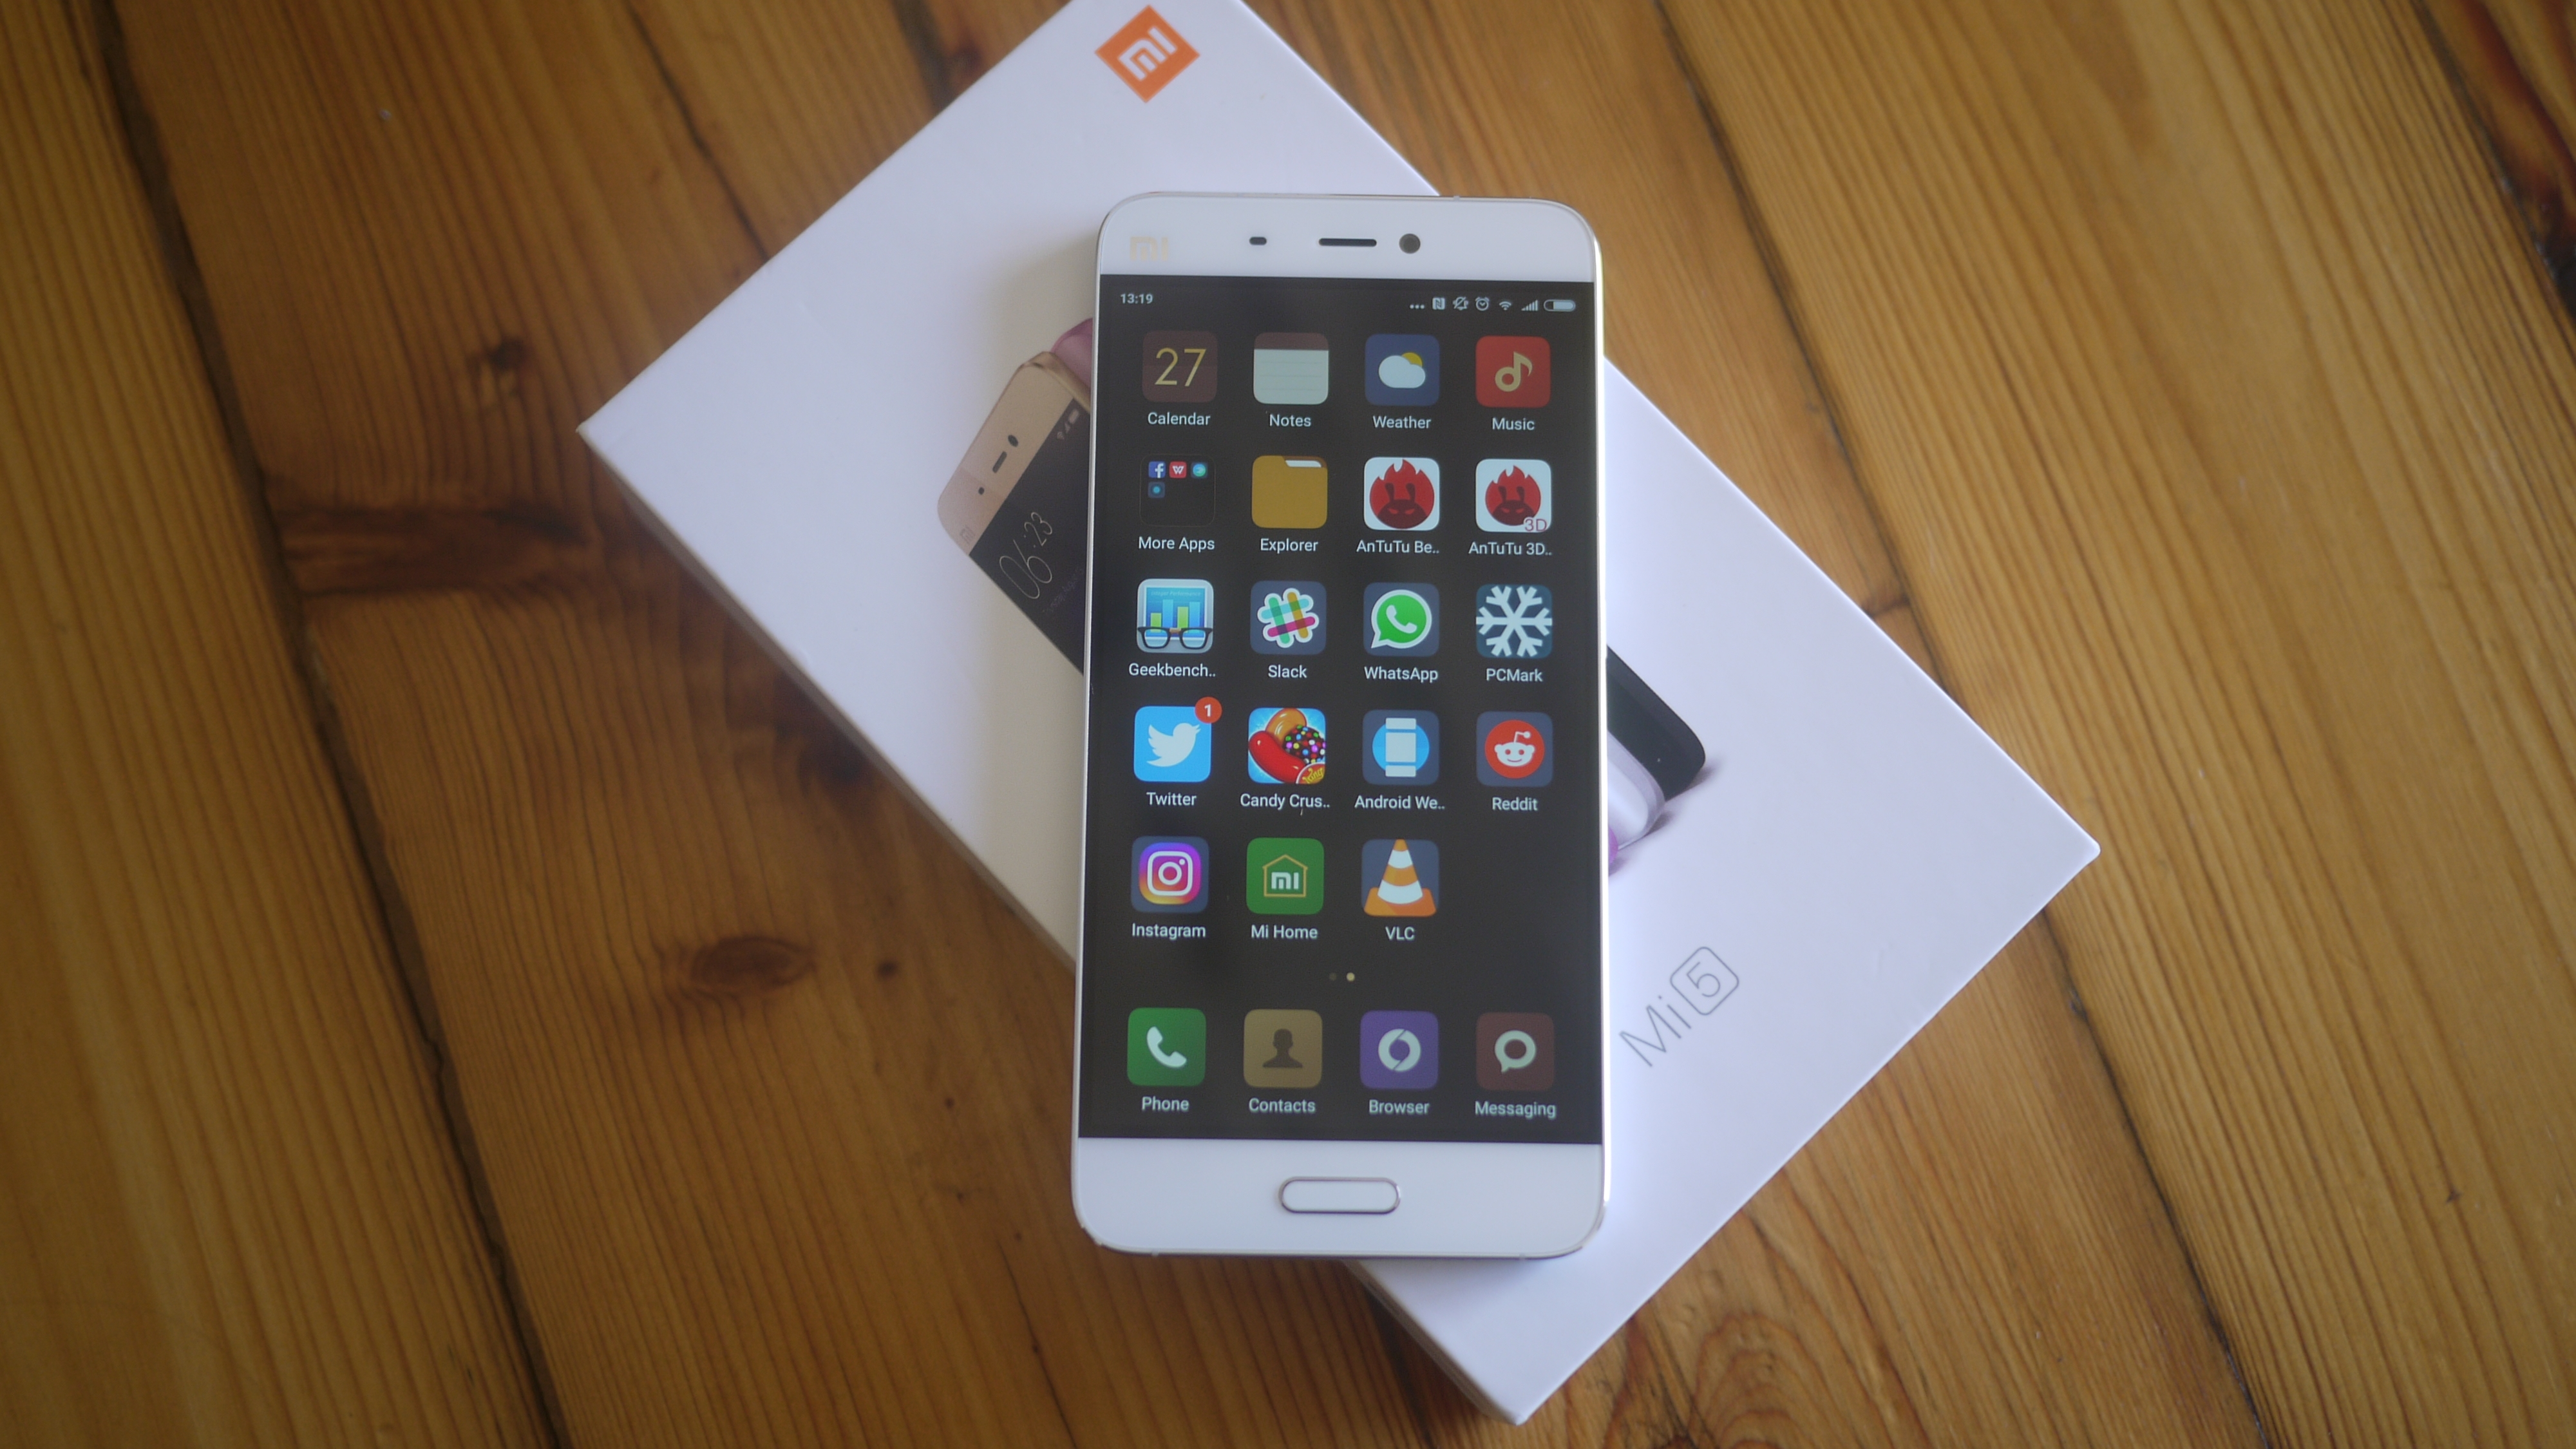 Xiaomi Mi 5 Review The Best Smartphone You Can Buy For Under R10k 3 32 Gb Silver Read News